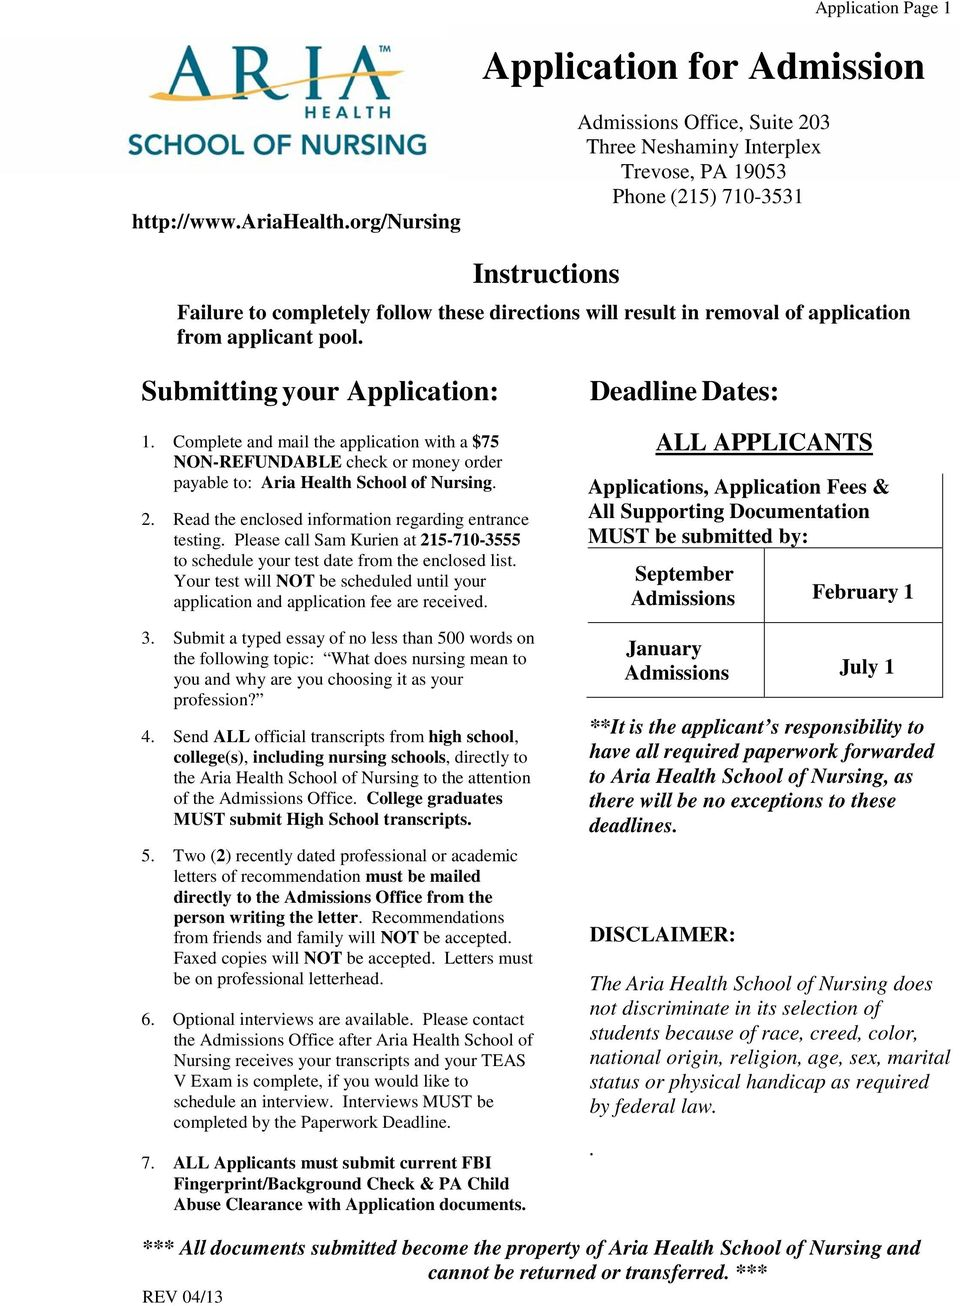 application from applicant pool. Submitting your Application: 1. Complete and mail the application with a $75 NON-REFUNDABLE check or money order payable to: Aria Health School of Nursing. 2.